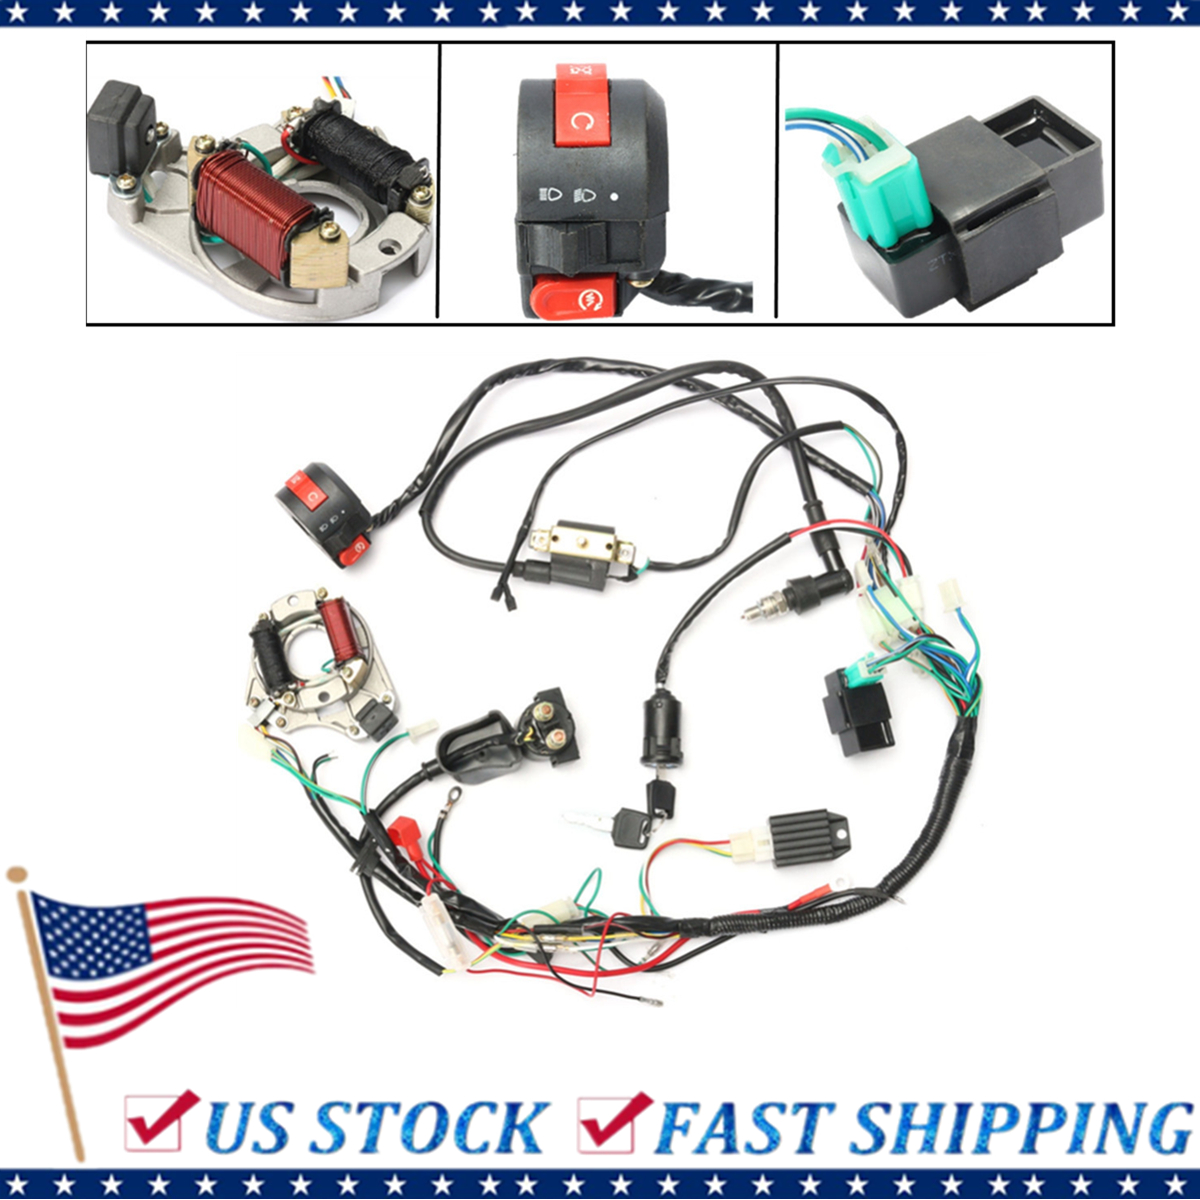 medium resolution of 1 set 50 70 90 110cc cdi wire harness assembly wiring kit atv1 set 50 70 90 110cc cdi wire harness assembly wiring kit atv electric start quad only fit for